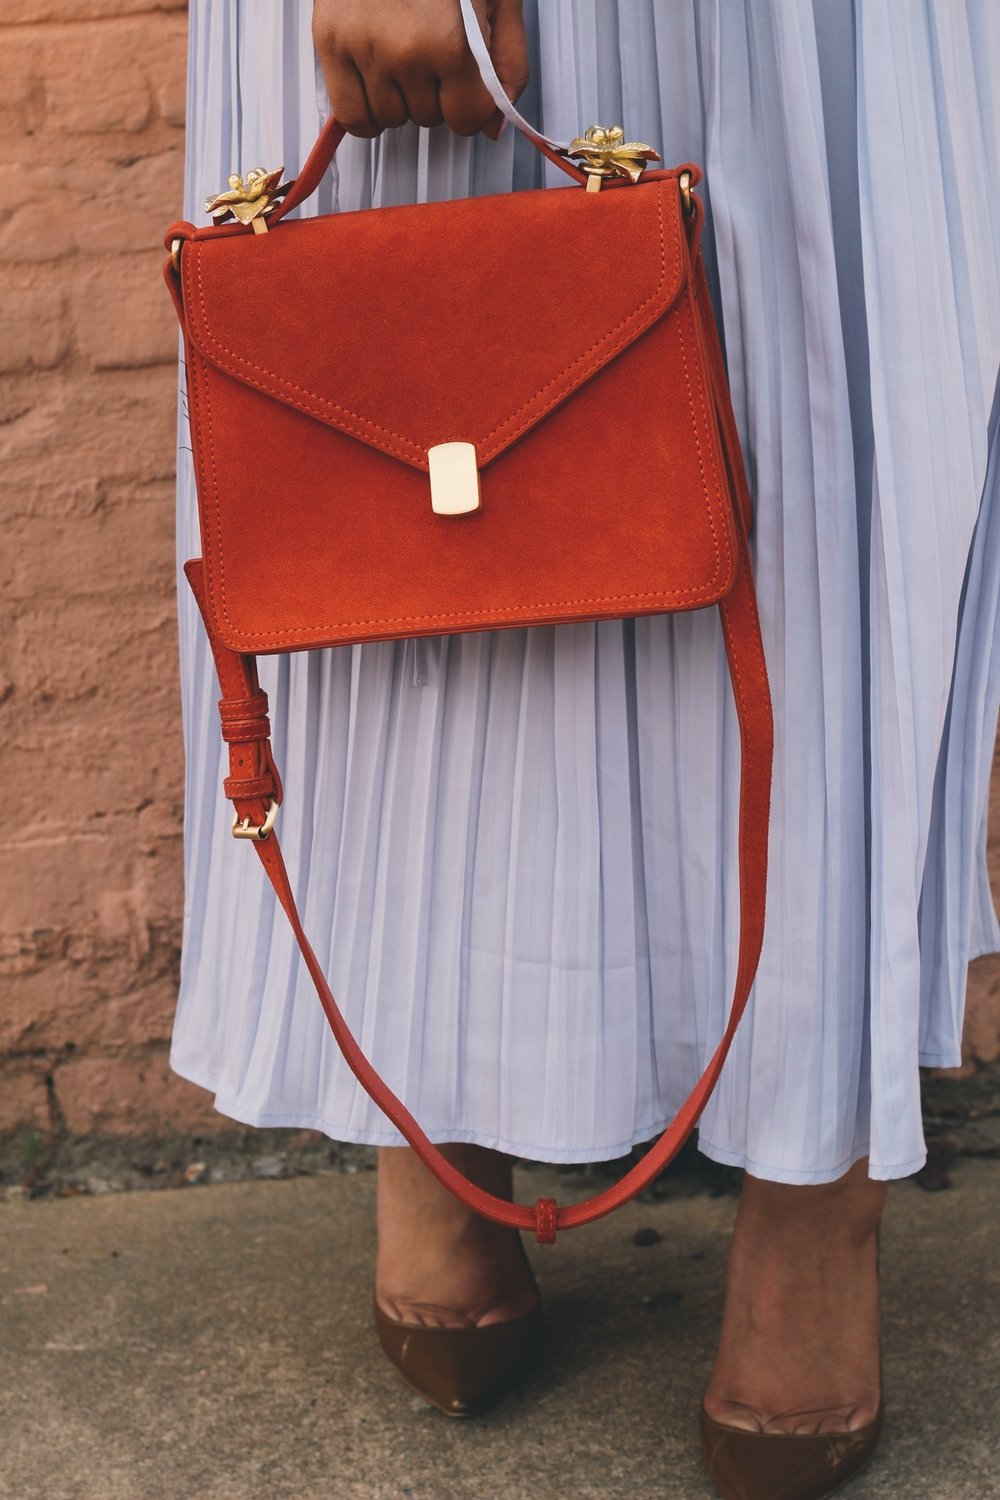 Warehouse-UK-asos-pleated-cold-shoulder-dress-in-lavender-zara-orange-suede-bag-House-of-CB-paris-nude-pumps-14.JPG